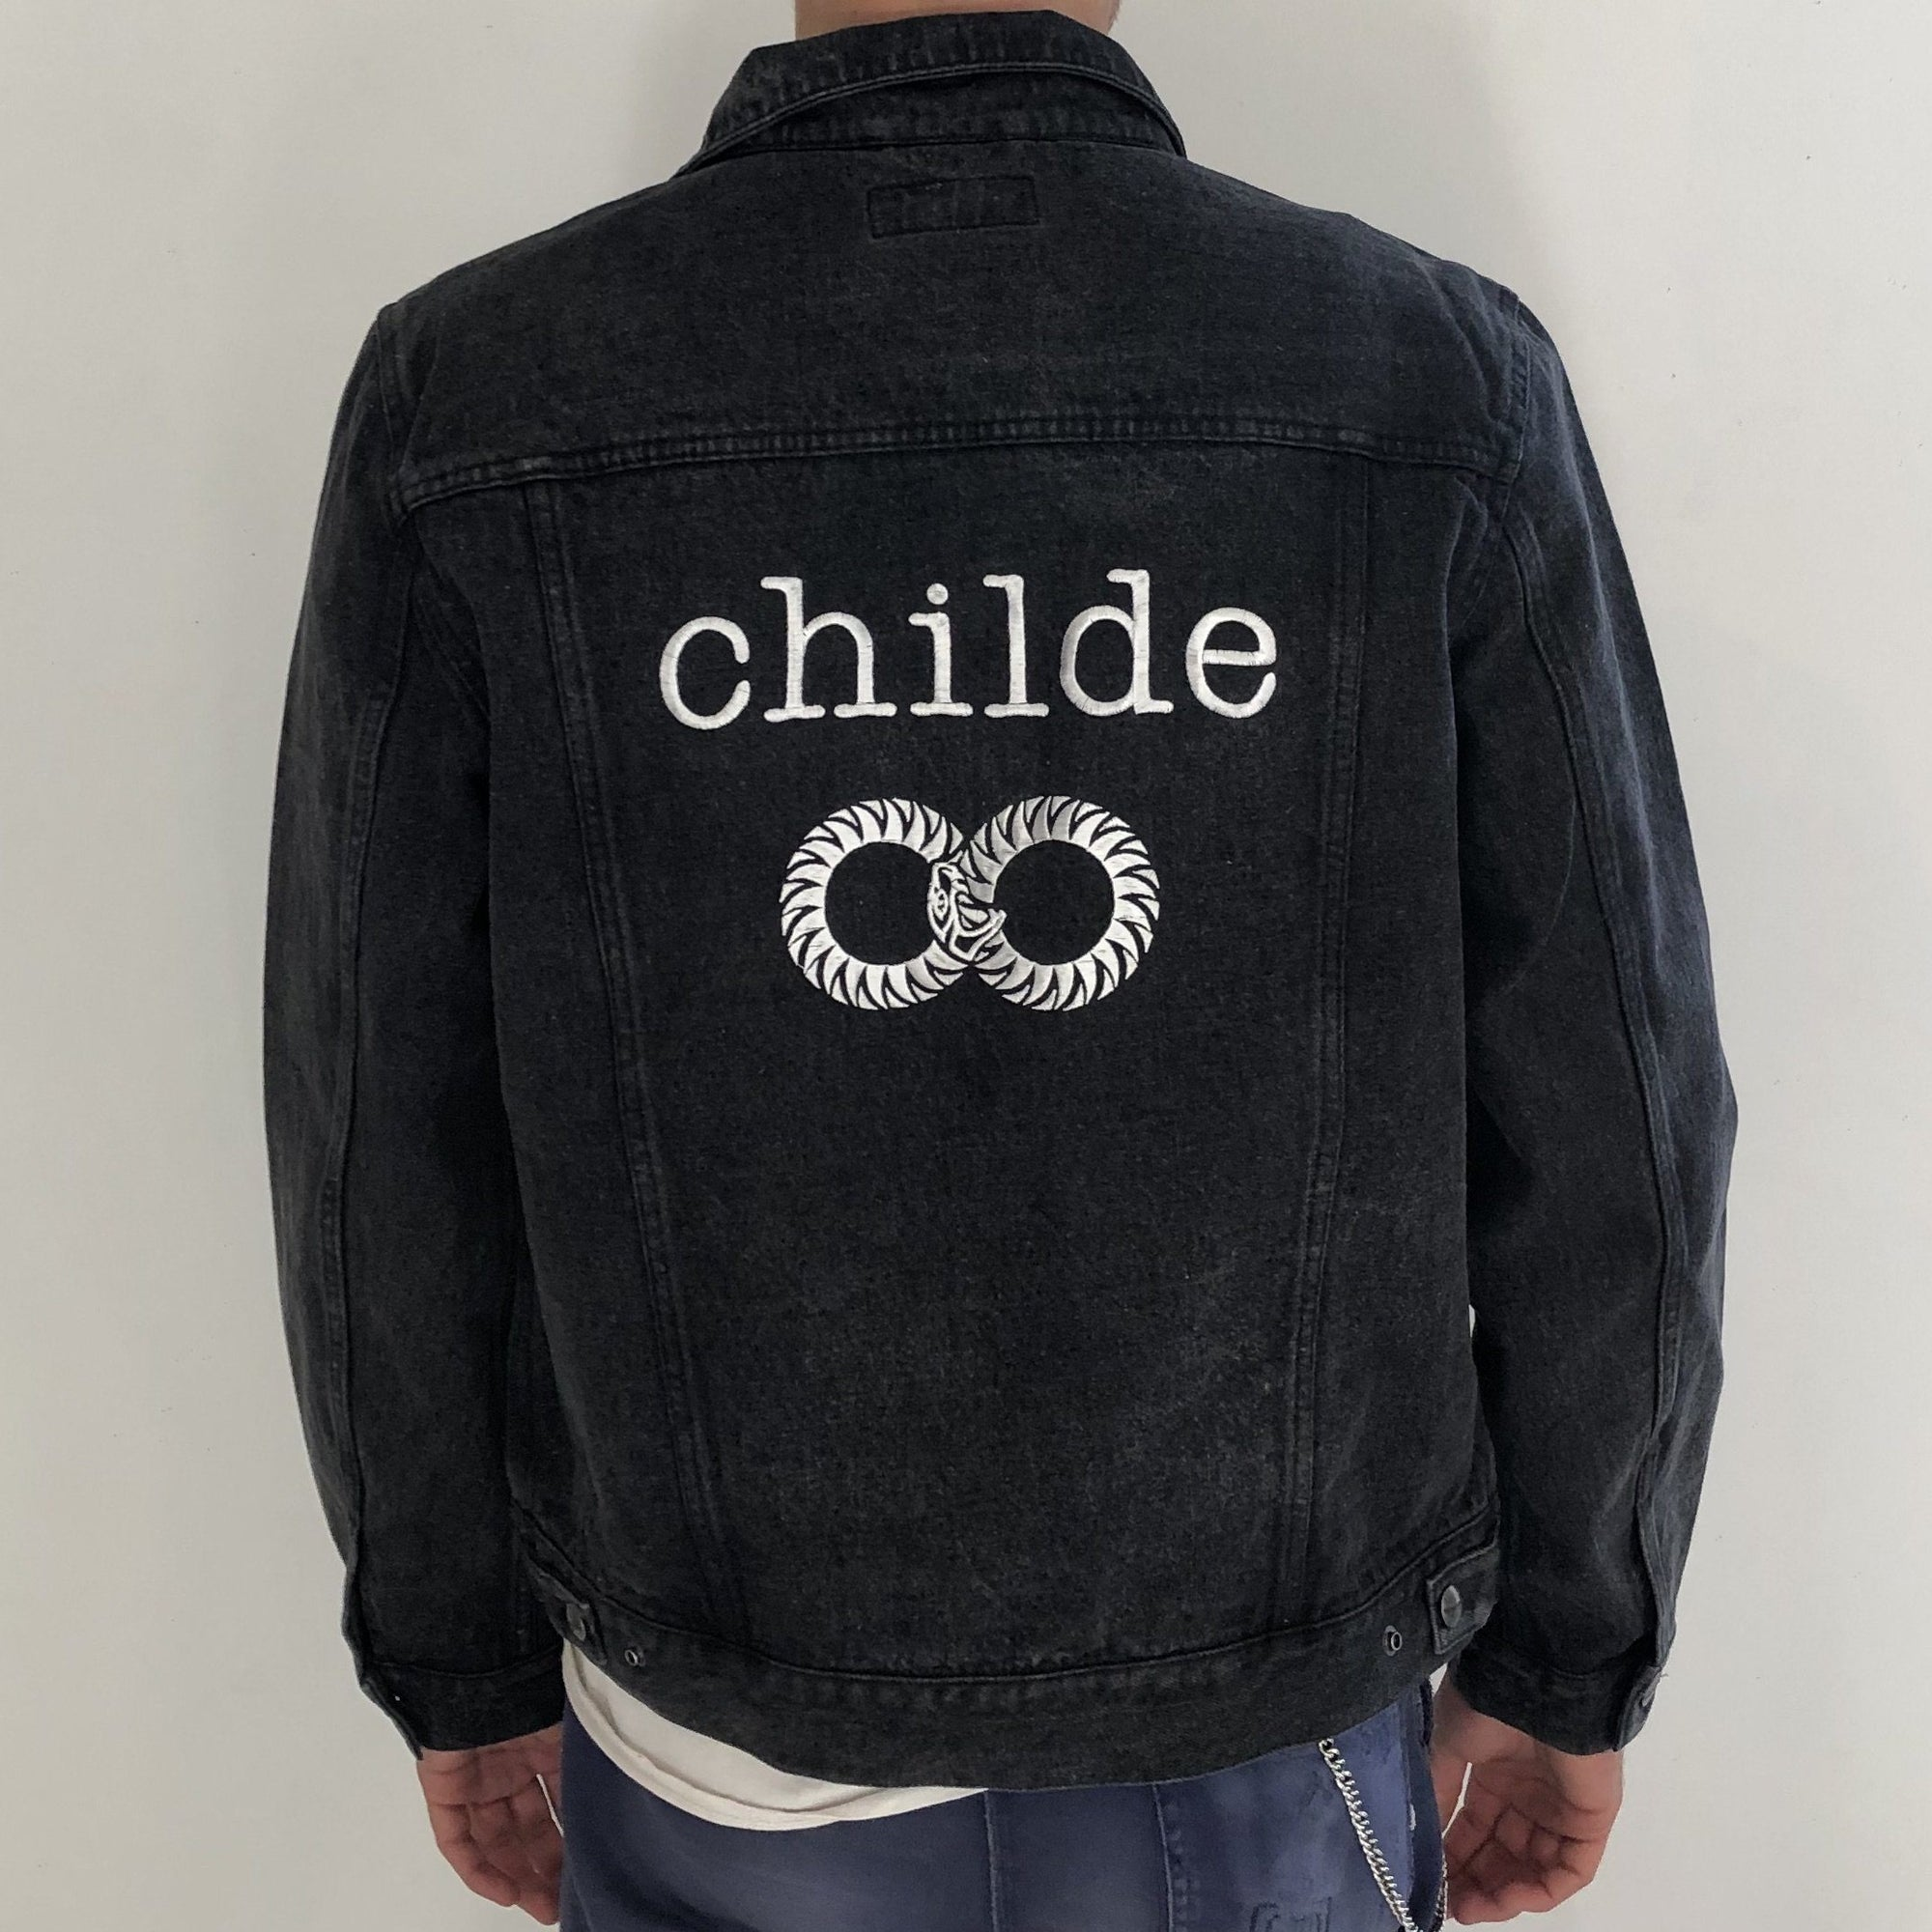 Wrangler x Childe Denim Jacket